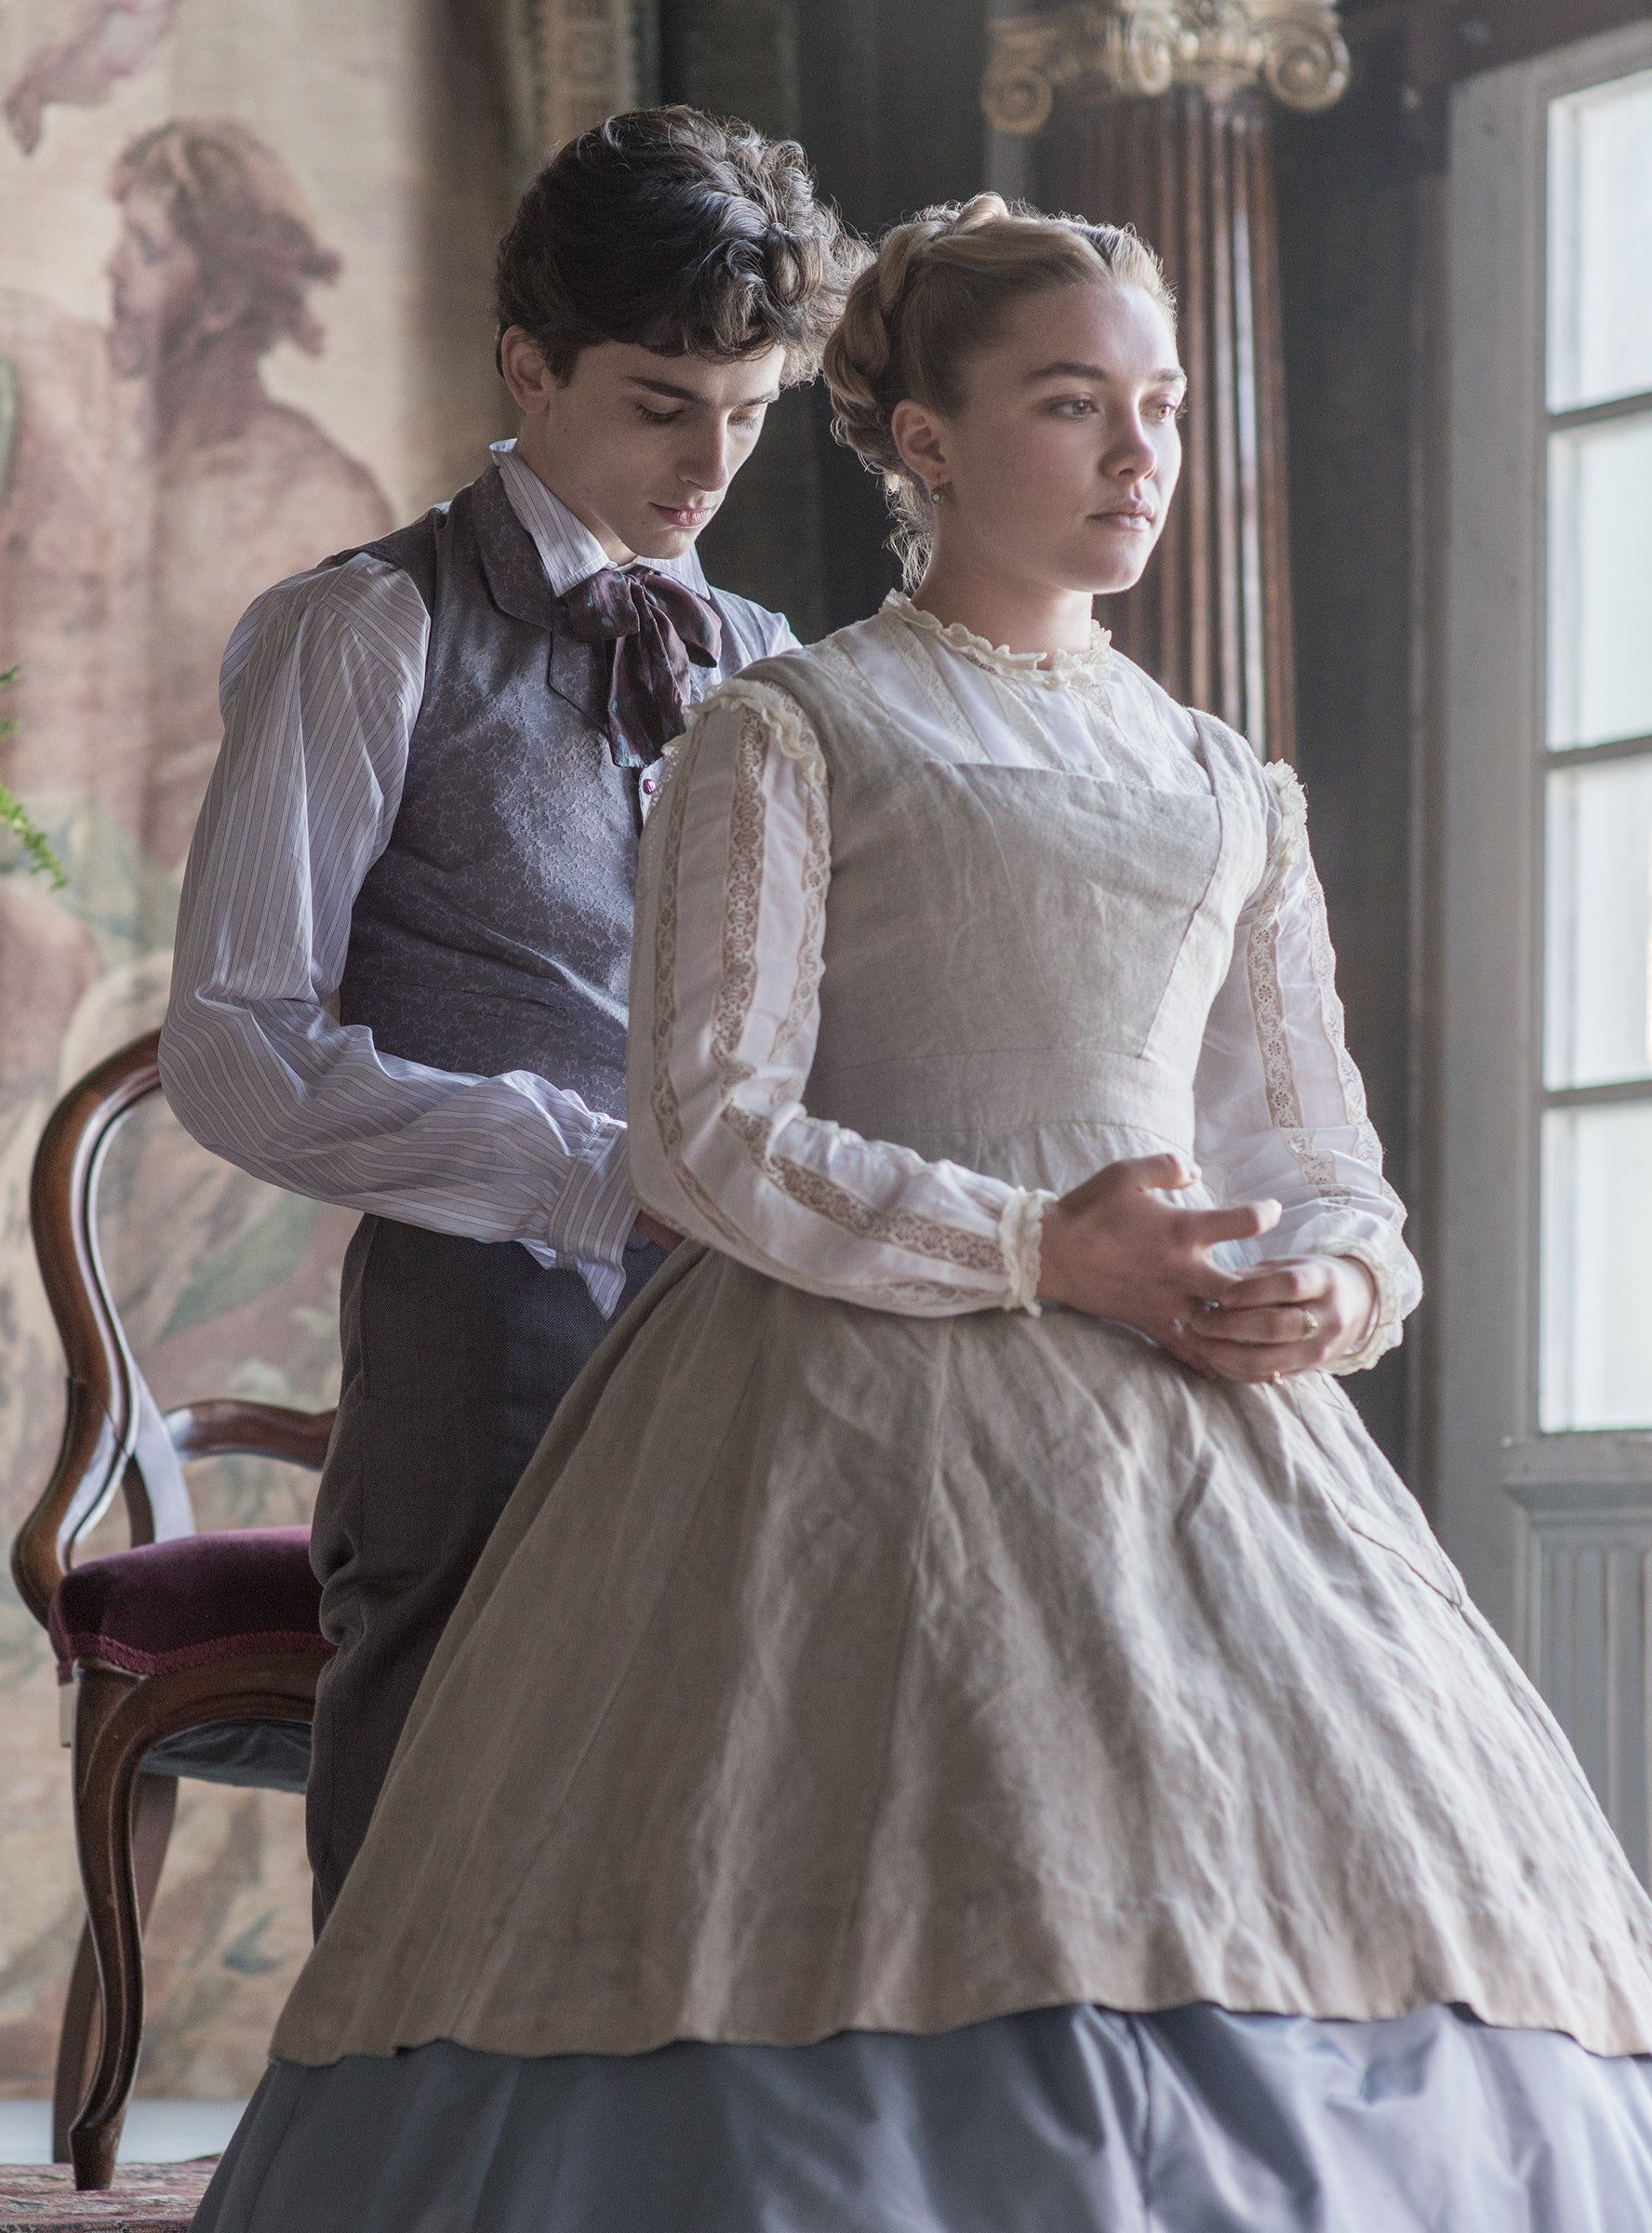 Christian Bale Has Broken His Silence On Timothée Chalamet Taking On His Iconic Little Women Role is part of Woman movie, Timothee chalamet, Florence pugh, Costume drama, Women, Movies - Christian Bale starred as Laurie in the 1994 Little Women movie